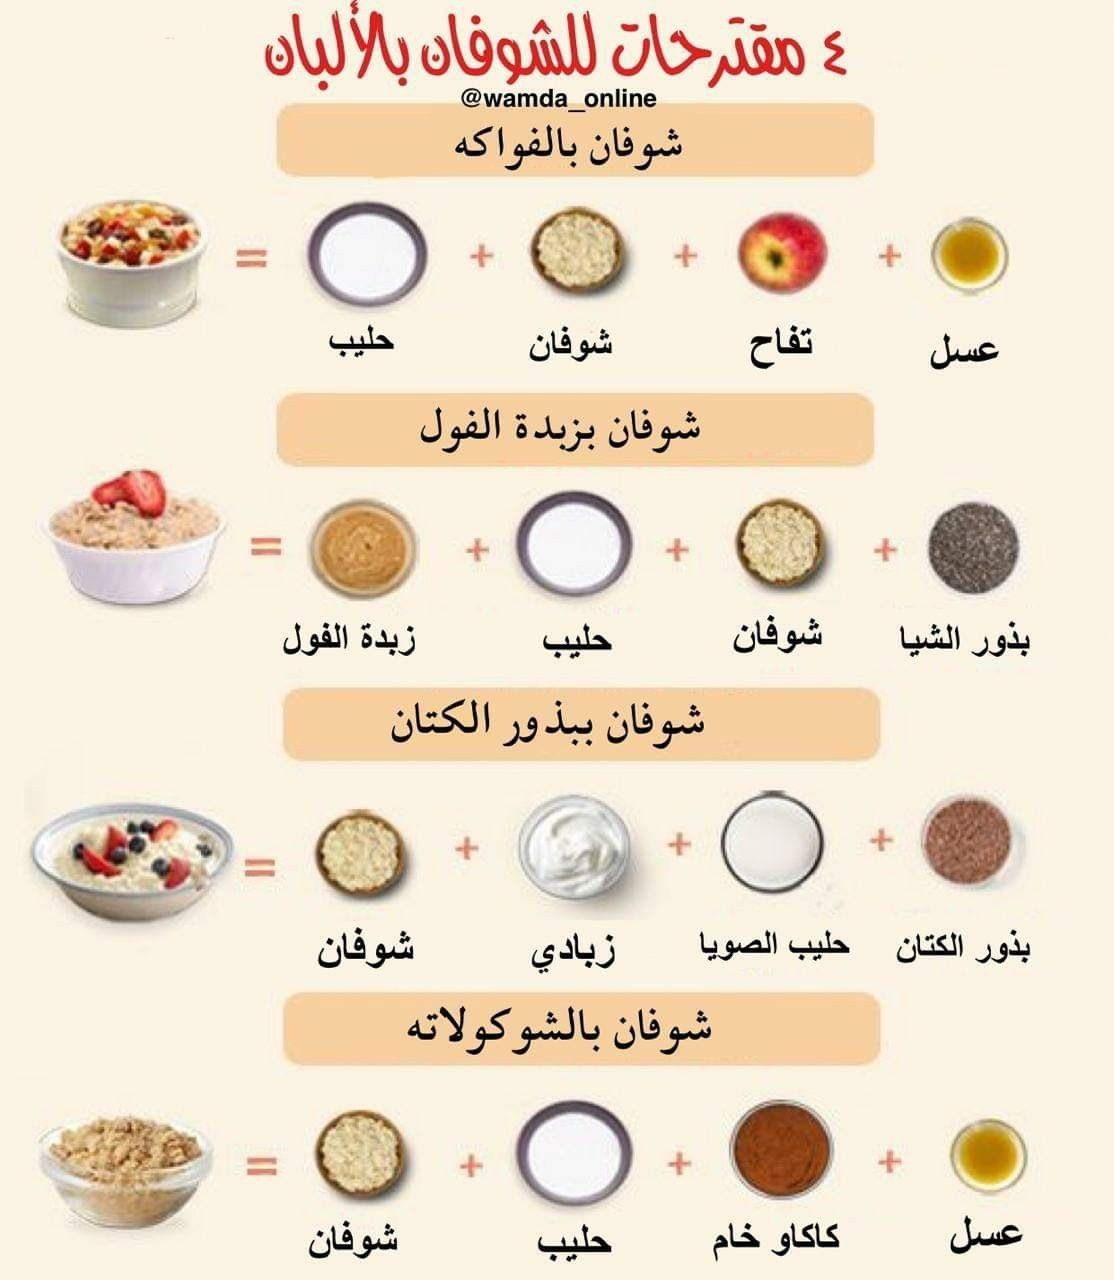 Pin By Yomna Shafy On Healthy Snakes Instagram Posts Instagram Health Diet